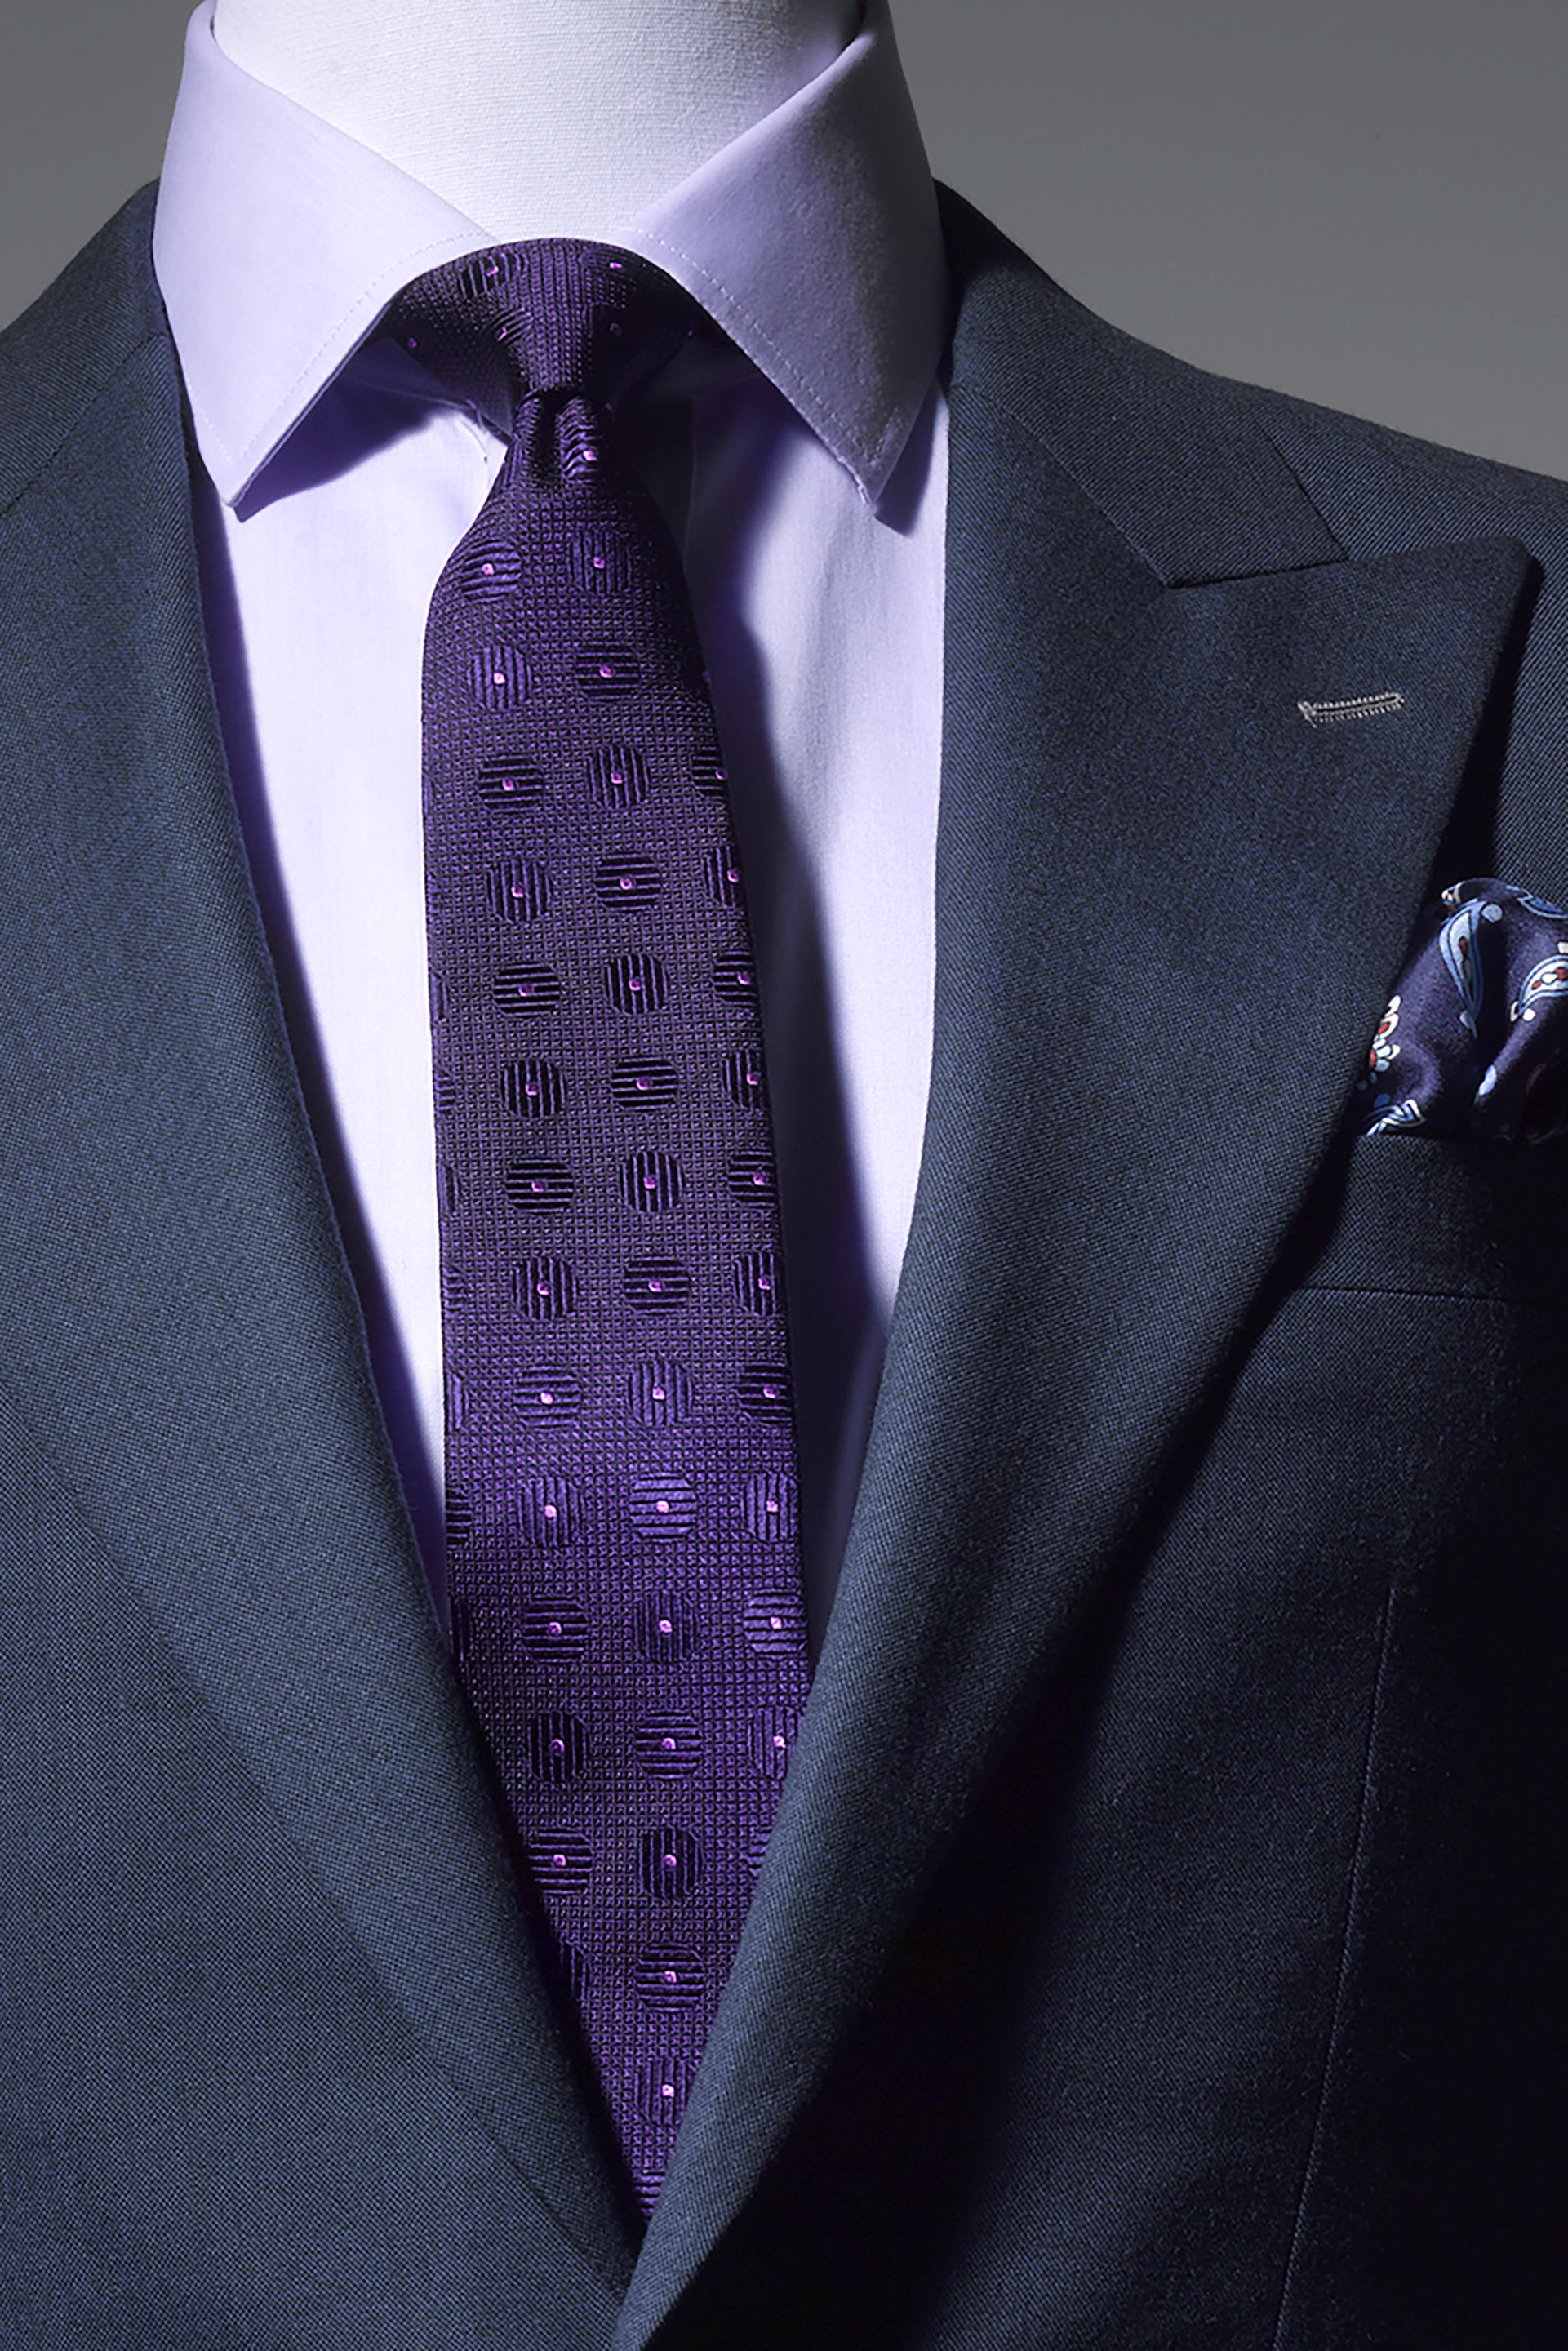 How Indochino Makes a Custom Fit Suit for Under $500 | Fortune